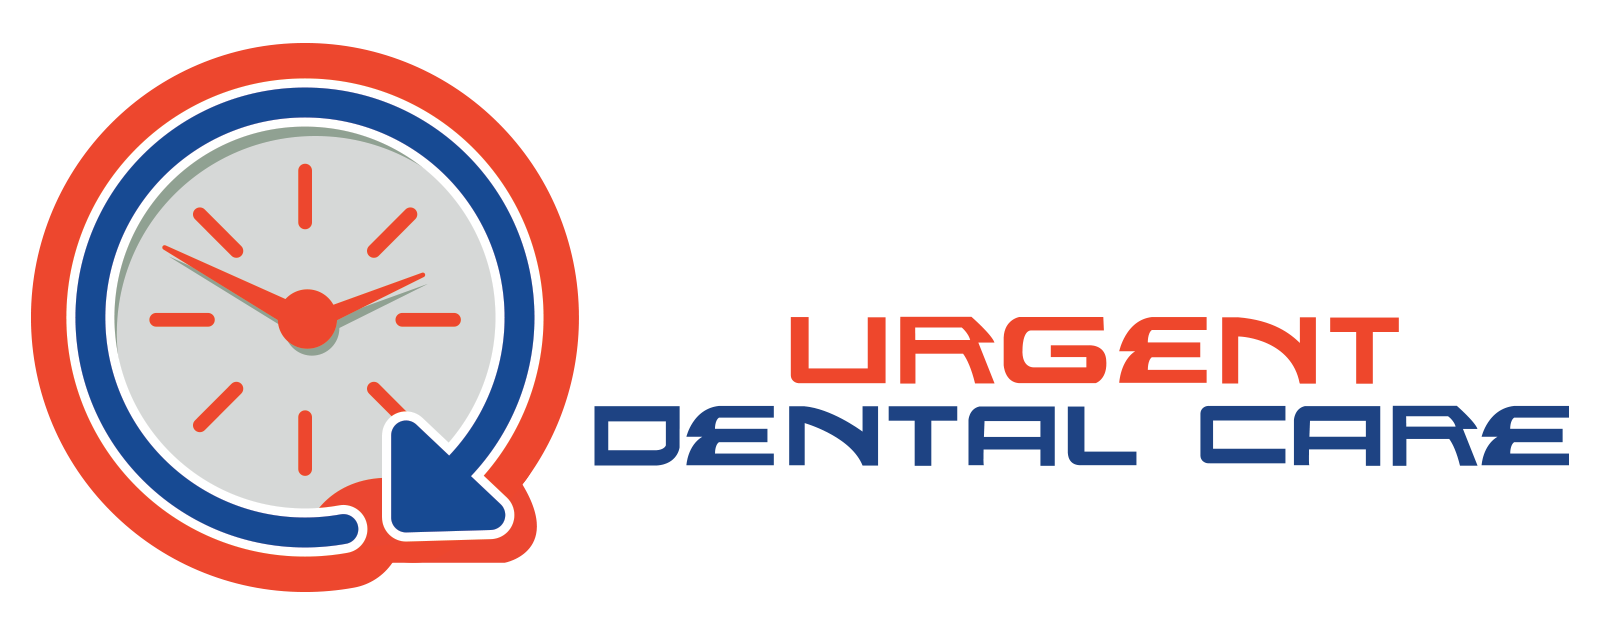 Urgent Dental Care